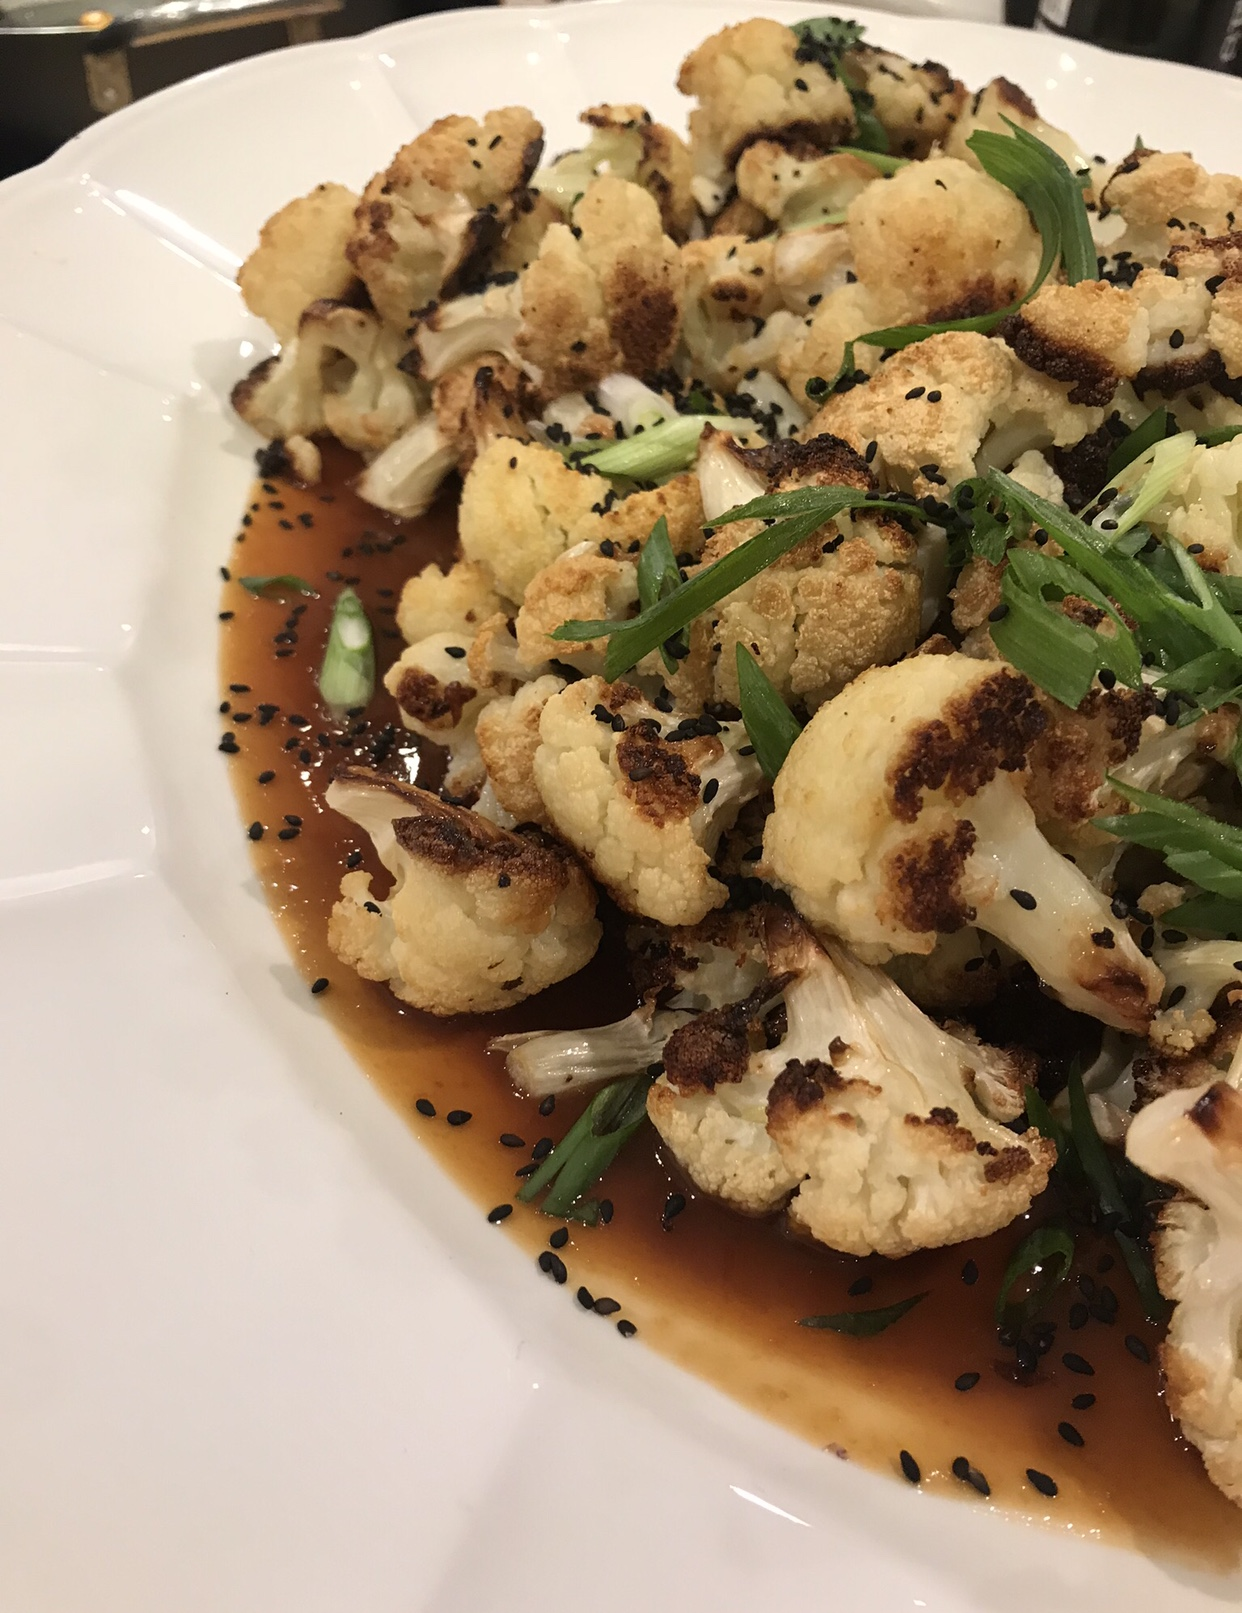 Serving Size: 12 people     Preparation time: 30 minutes        Ingredients:    5 Cauliflower florets, cut into 2 inch florets  1/3  cup sesame oil  4 Tbsp Grape seed oil   1/2 tsp salt  1/2 cup red or white miso   1/3 cup sugar   1/2 cup mirin   3 tbsp soy sauce   3 garlic cloves, microplane      Directions: Heat the oven to 500 degrees F. Toss the cauliflower in the sesame oil, grape seed oil,  and season with a little salt. Place on a baking tray lined with baking paper and roast for 25 minutes, or until the cauliflower is browned.      Meanwhile, In a sauté pan, on medium low heat, pour mirin, allow it too cook down for 30 seconds, it should start bubbling. Then add miso paste, stir in for 3 minutes. Then add sugar, soy sauce, and garlic. Cook on low for 2 minutes,  pour over the roasted cauliflower, tossing it on the tray to coat well. Continue to roast for a further 5 minutes, or until the miso sauce starts to caramelize.      Remove cauliflower  from the oven, transfer to a serving plate, scatter with spring onion and toasted sesame seeds, and serve. Enjoy